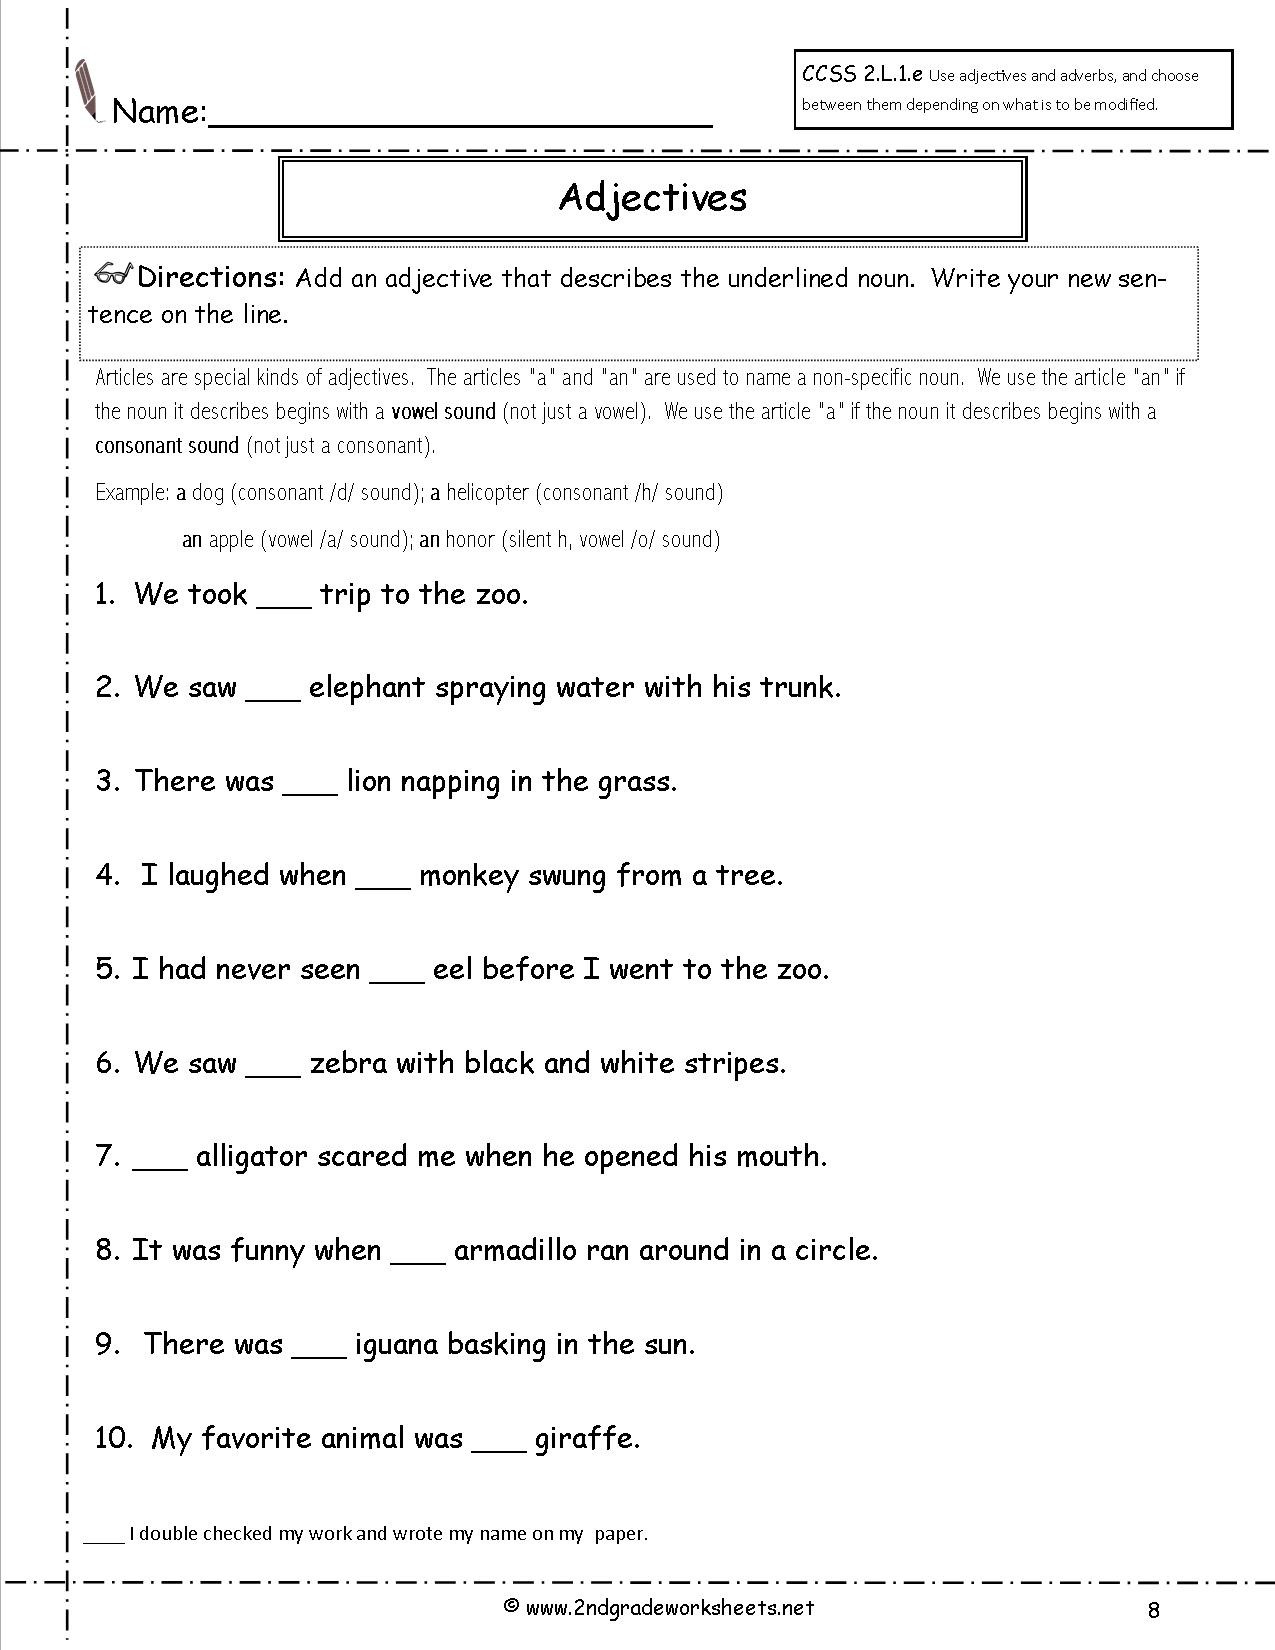 Prefix Suffix Worksheet 3rd Grade Free Language Grammar Worksheets and Printouts Igcse Grade